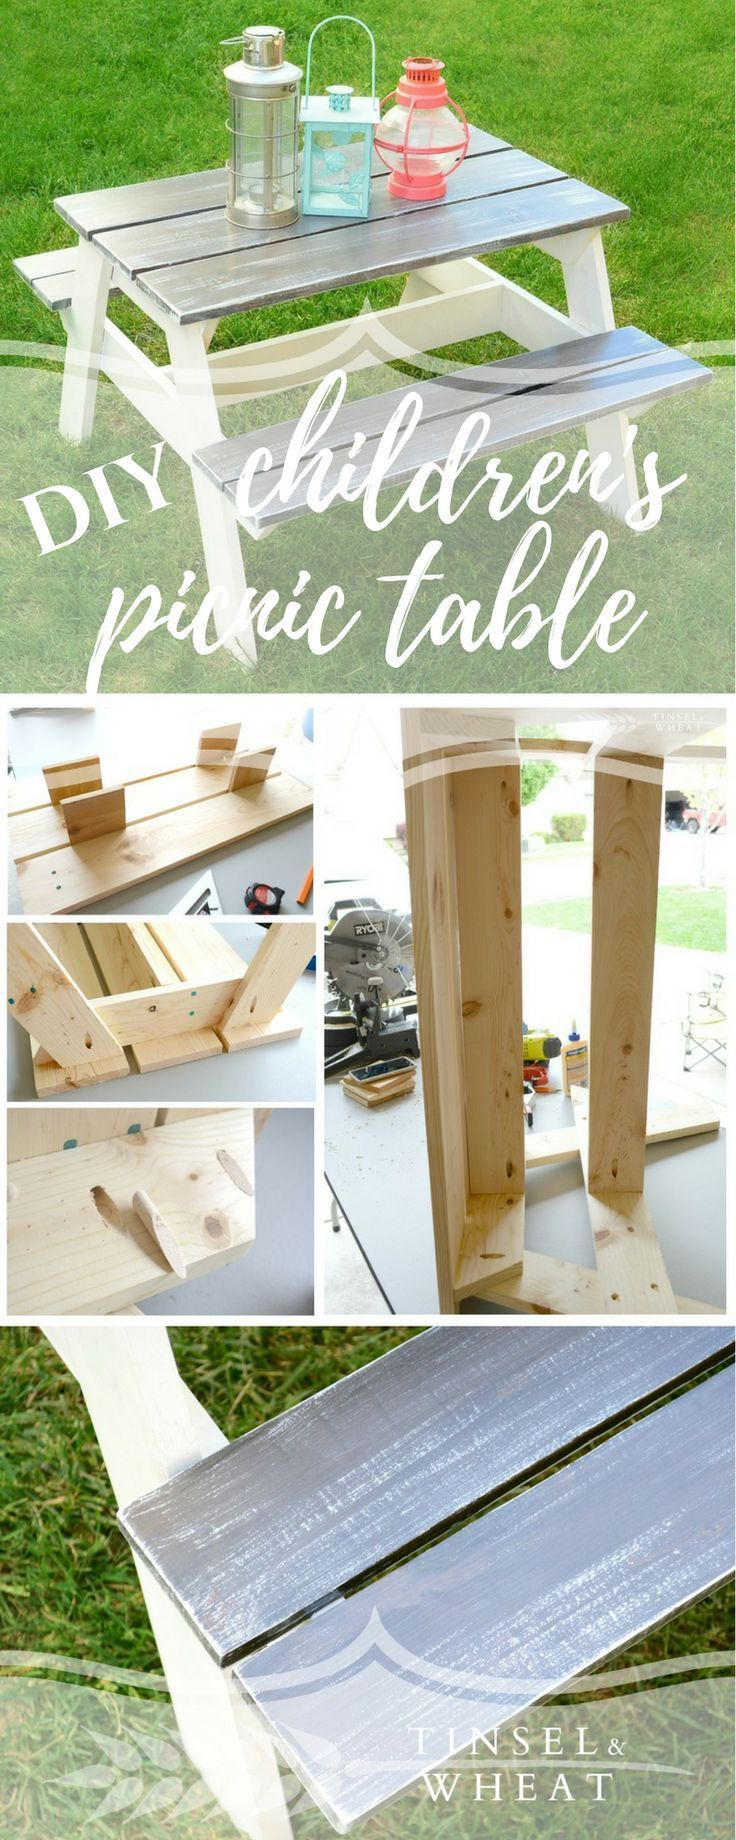 Diy childrens picnic table perfect size for toddlers and